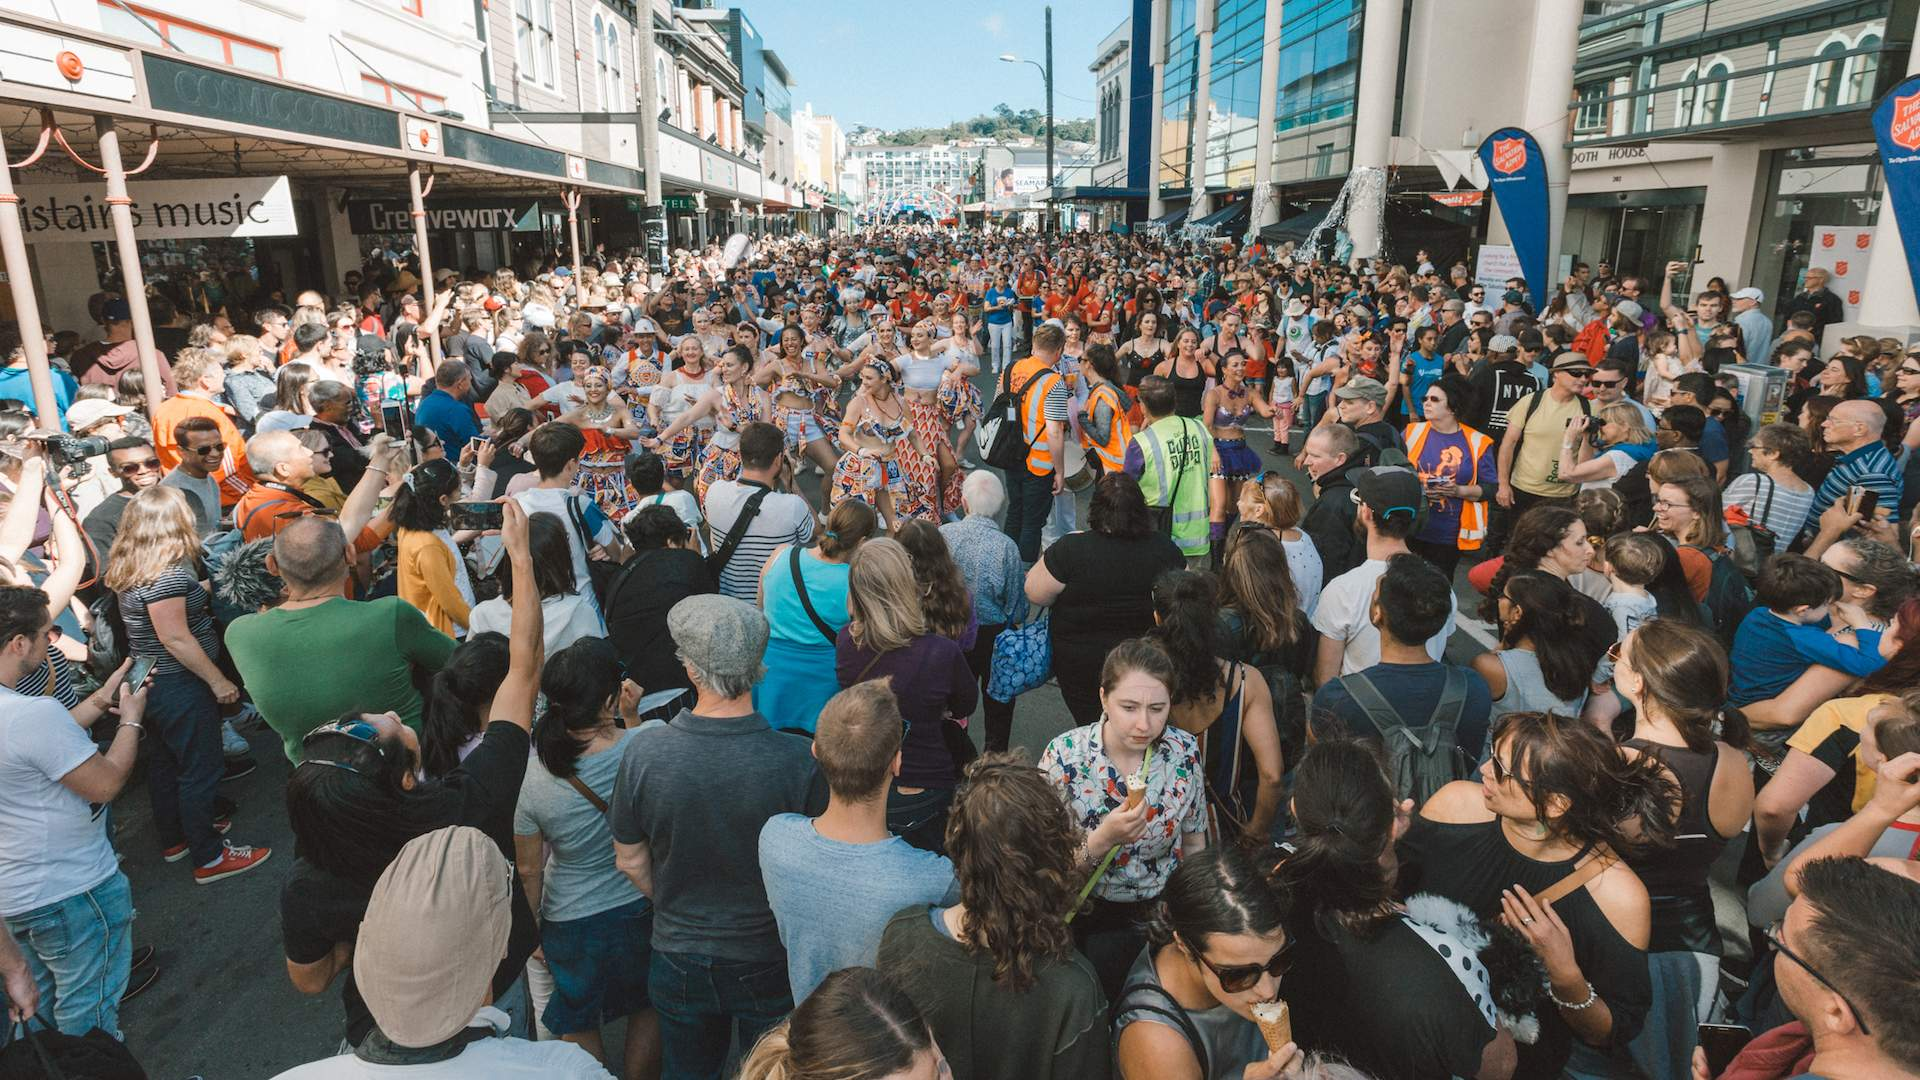 The New Zealand Government Has Announced a Ban on Events of More Than 500 People